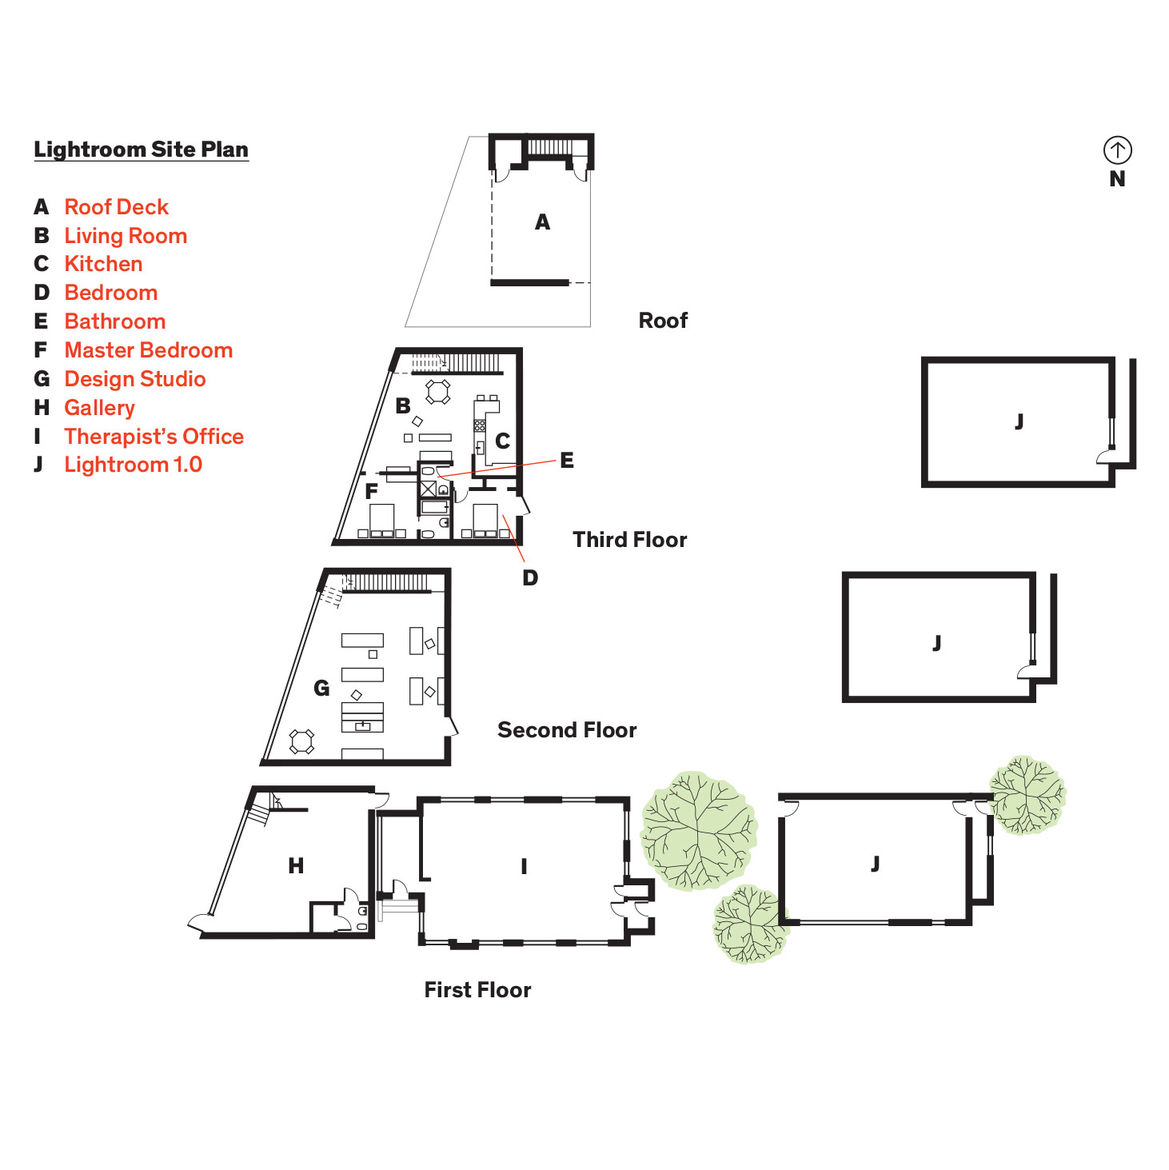 Lightroom 2.0 Floorplan